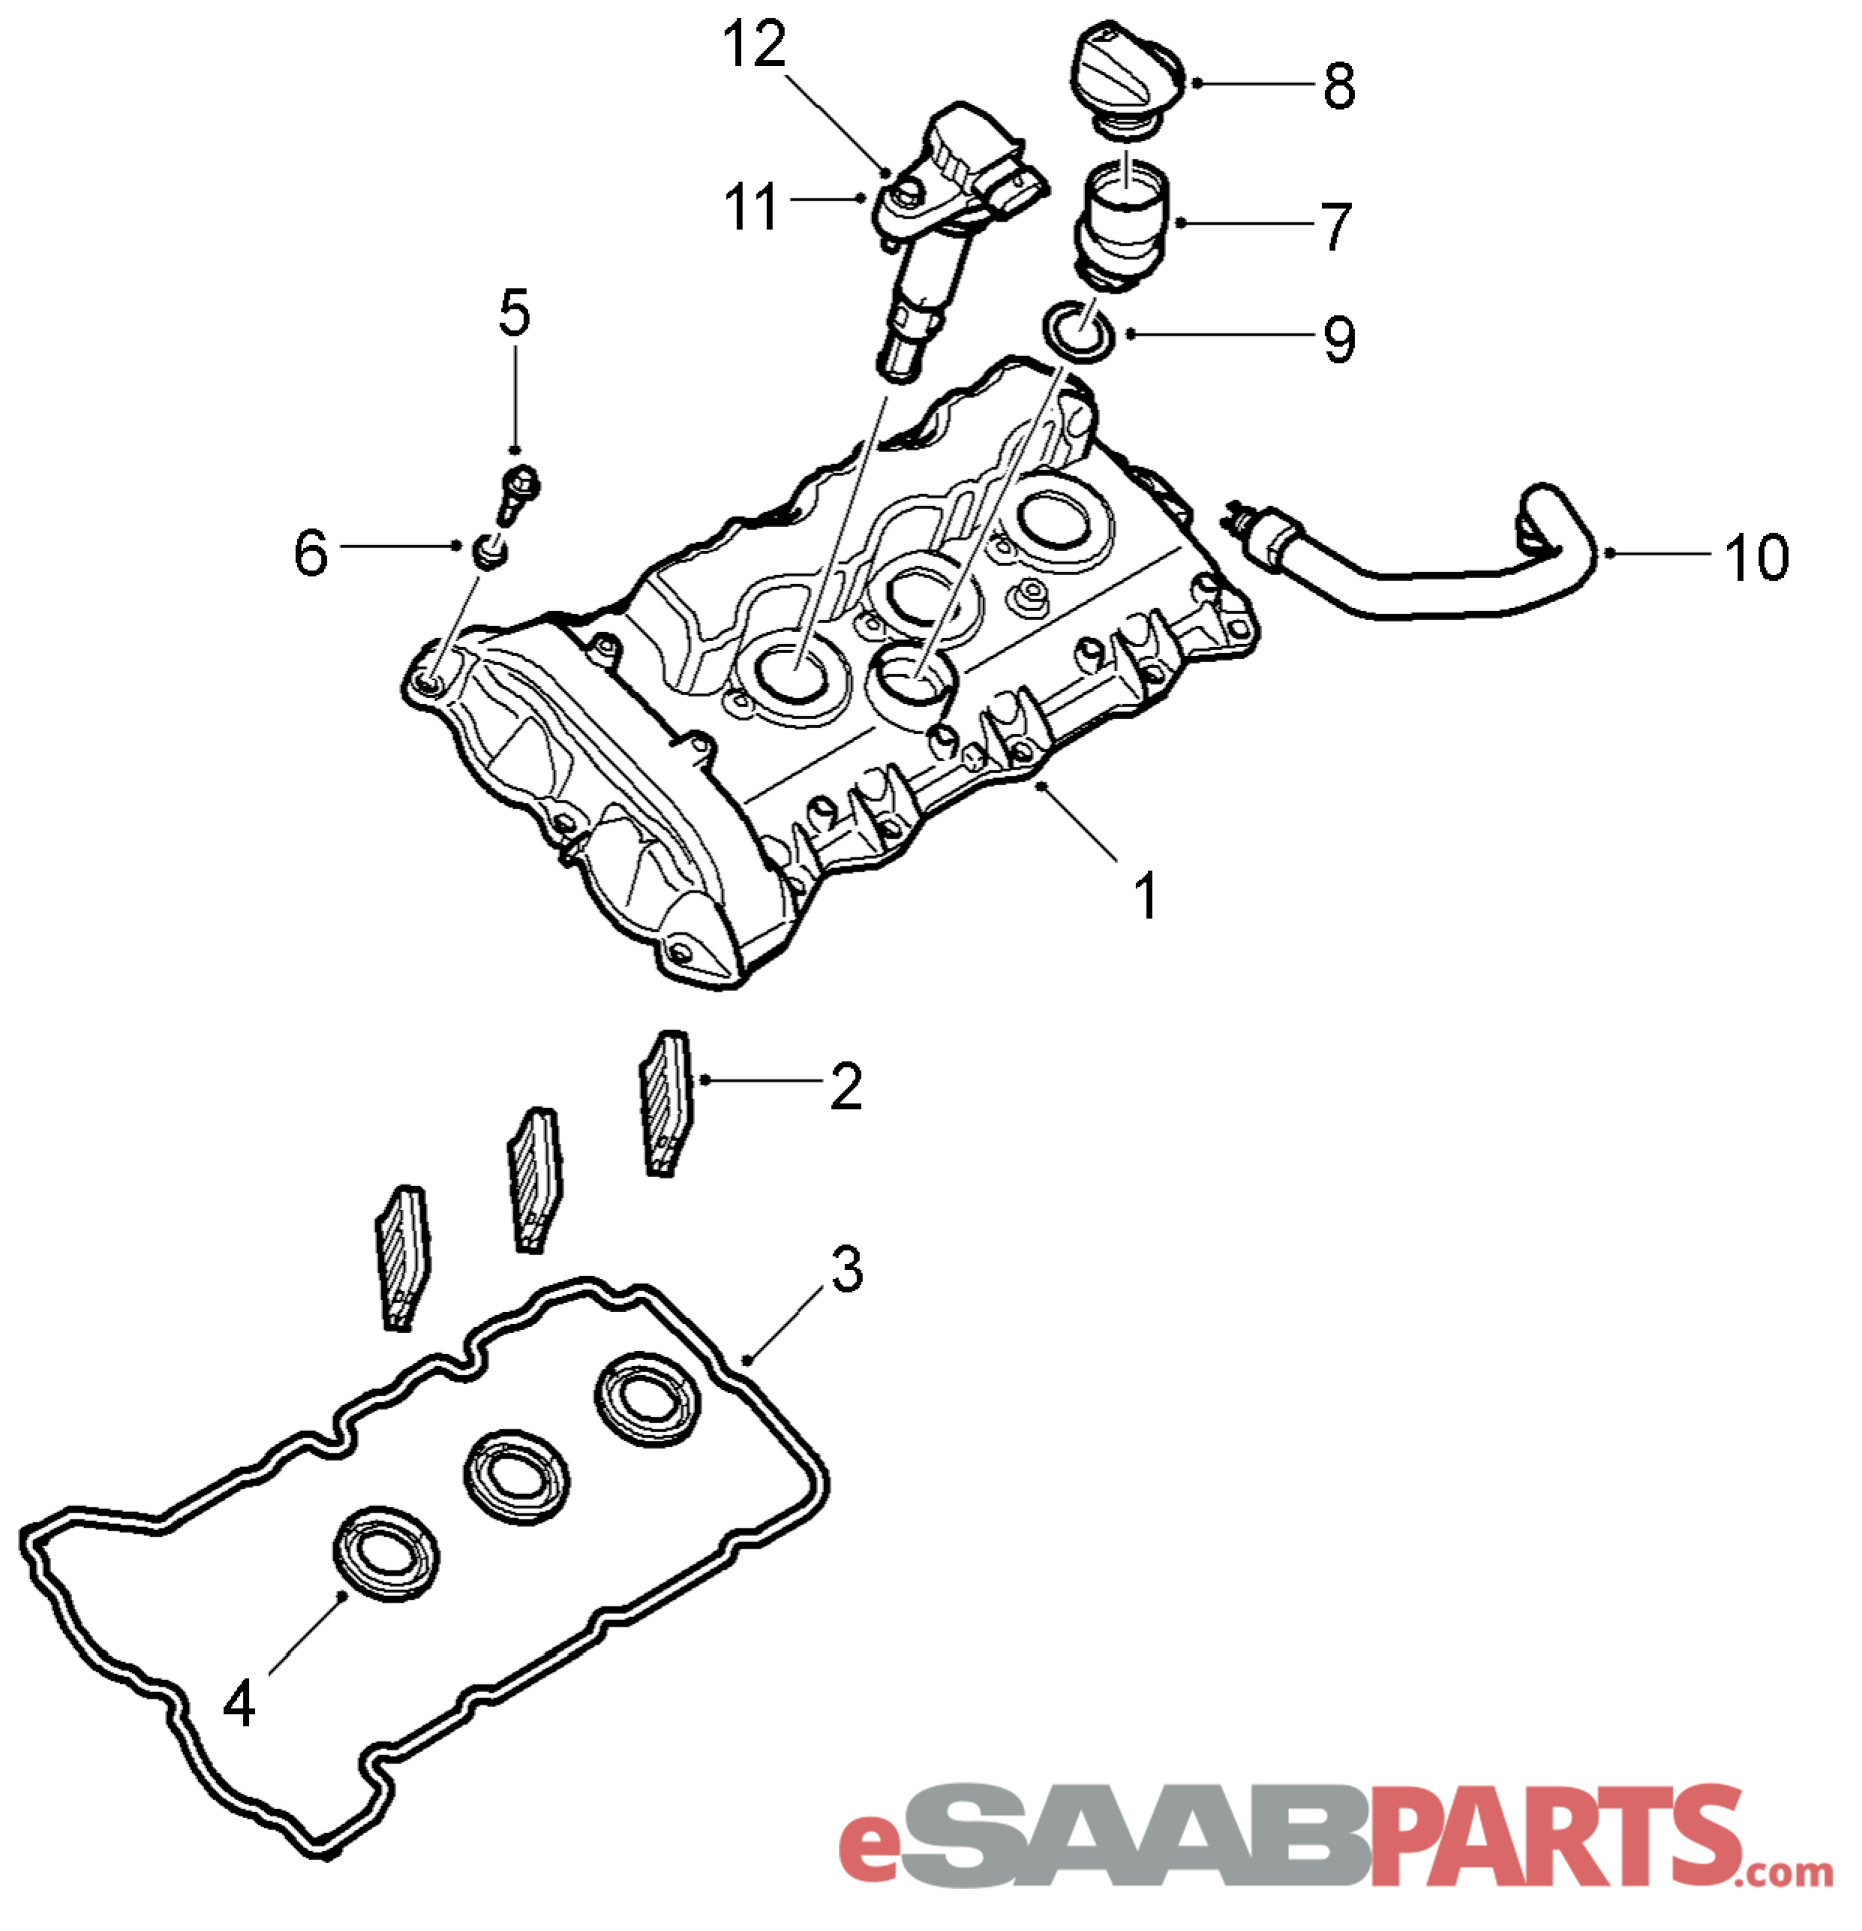 2006 infiniti g35 exhaust parts diagram